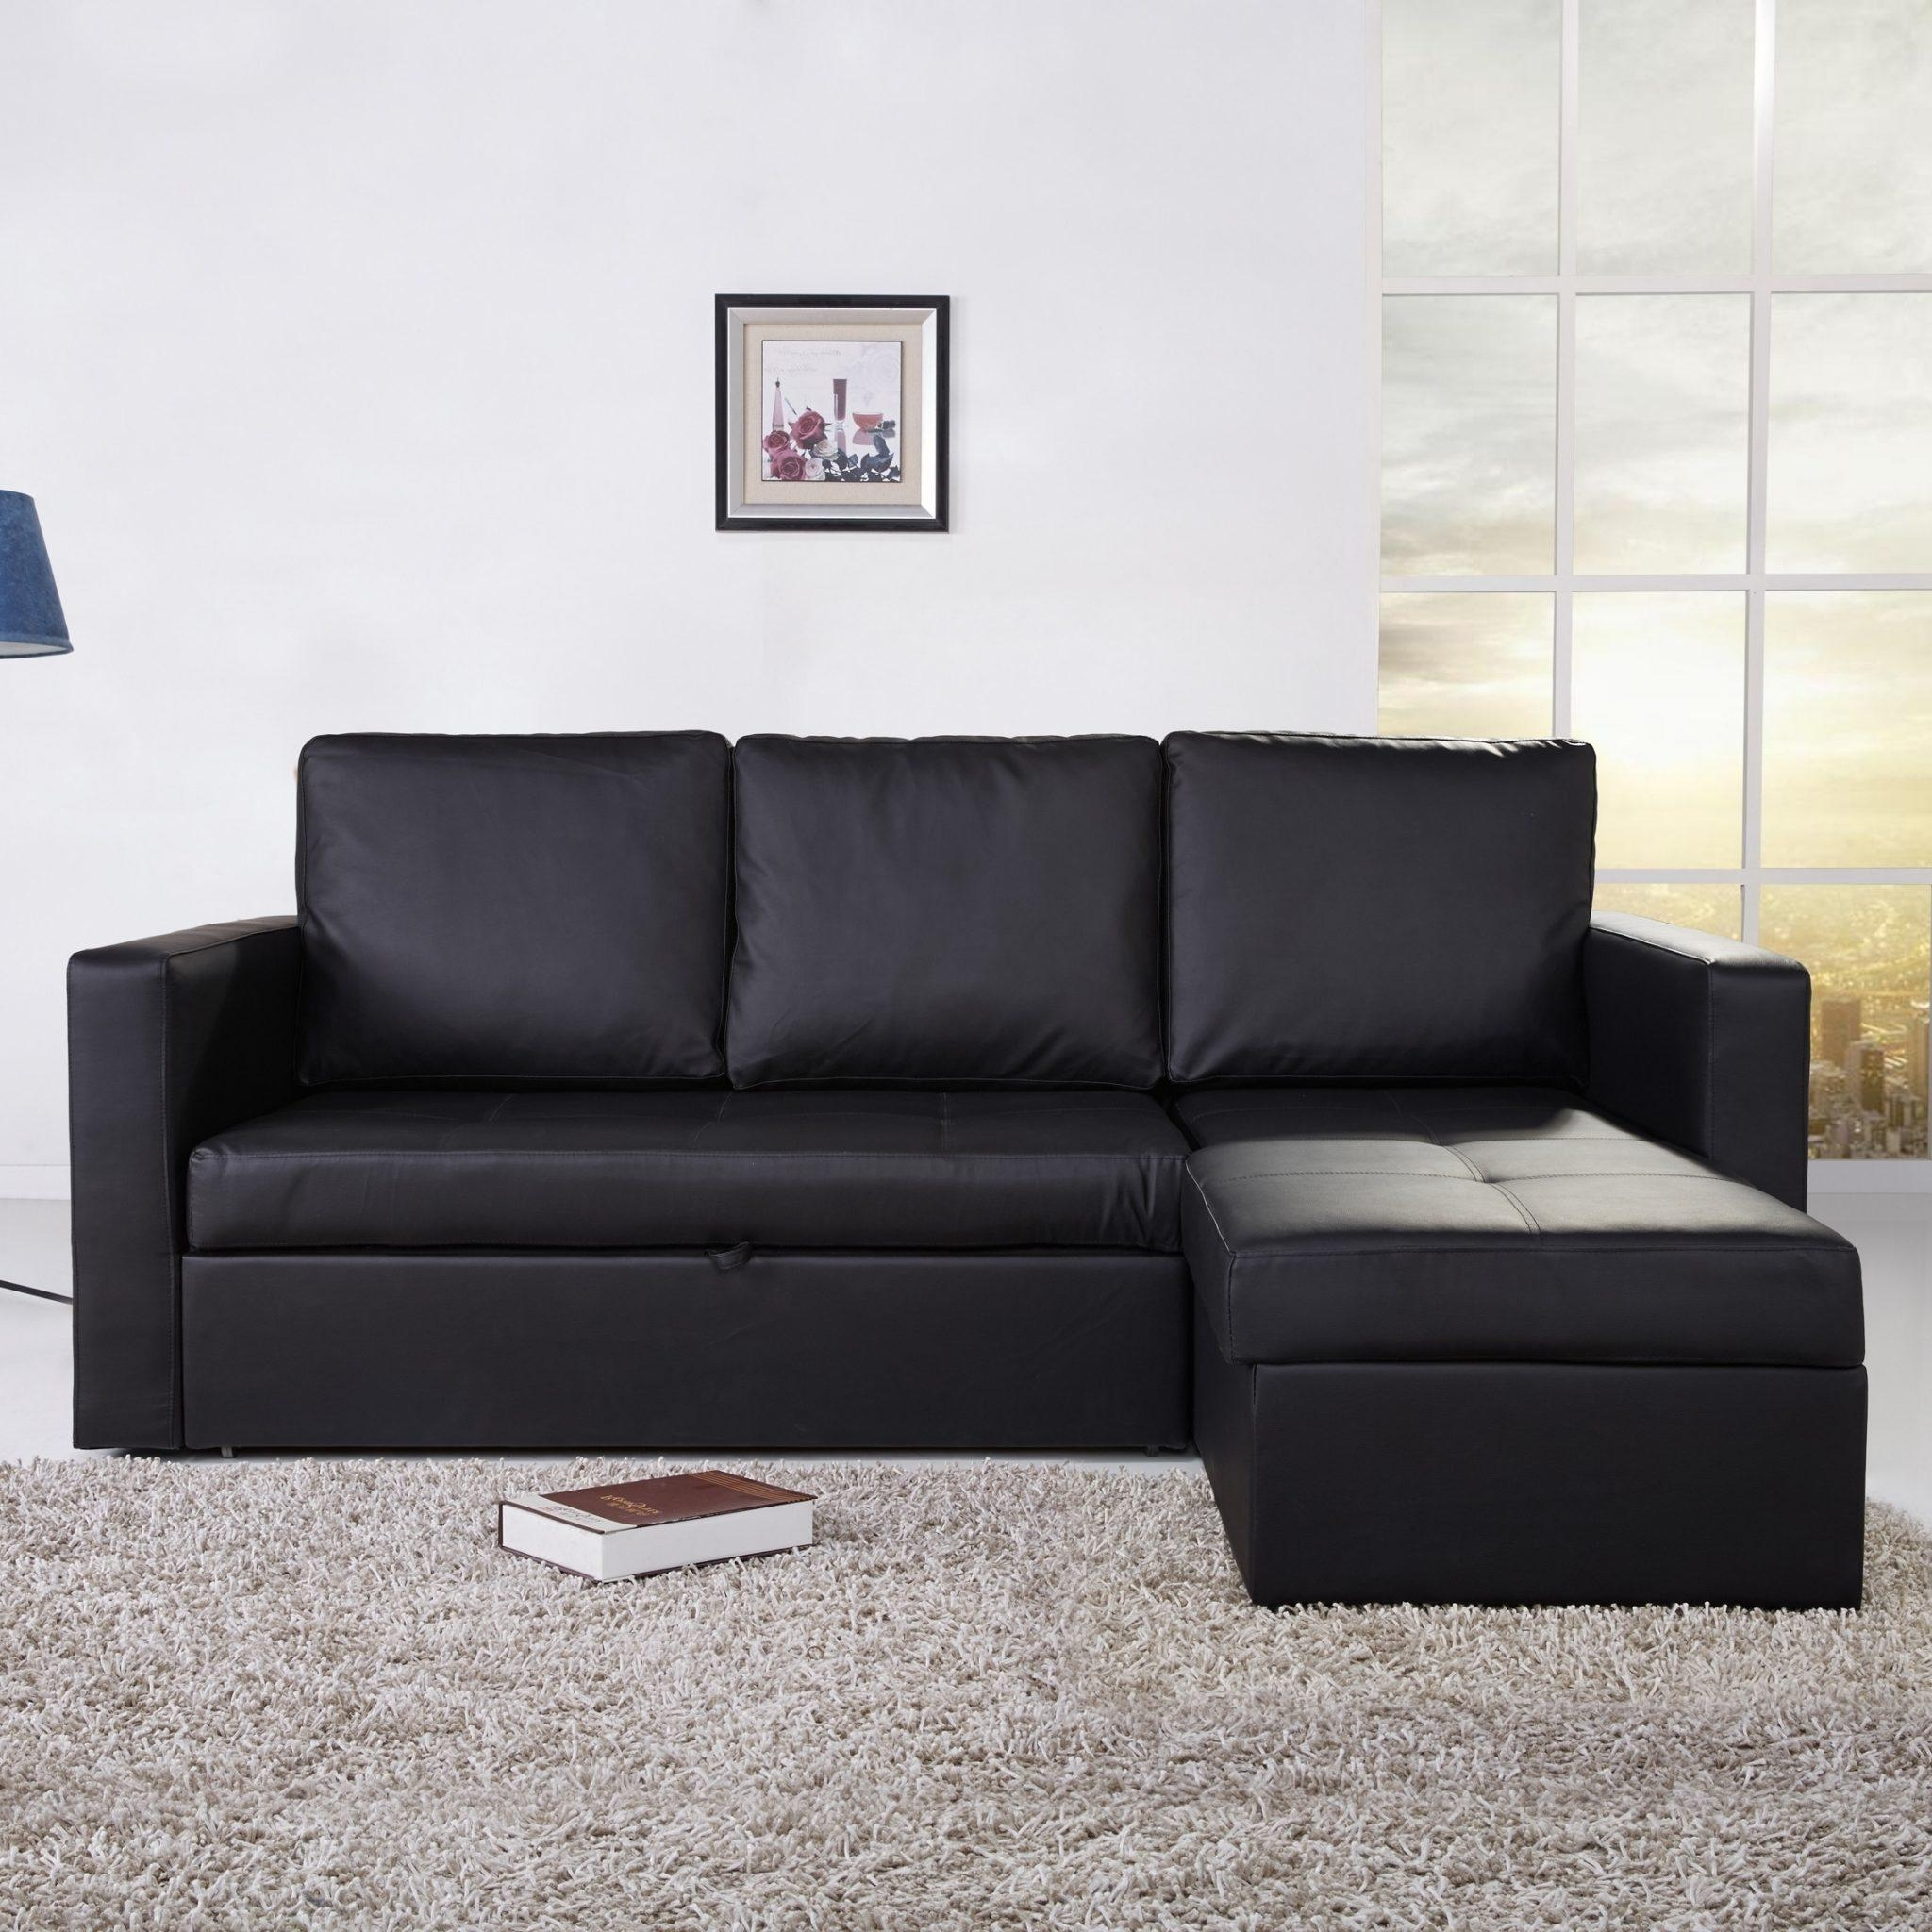 20 Best Collection of King Size Sleeper Sofa Sectional